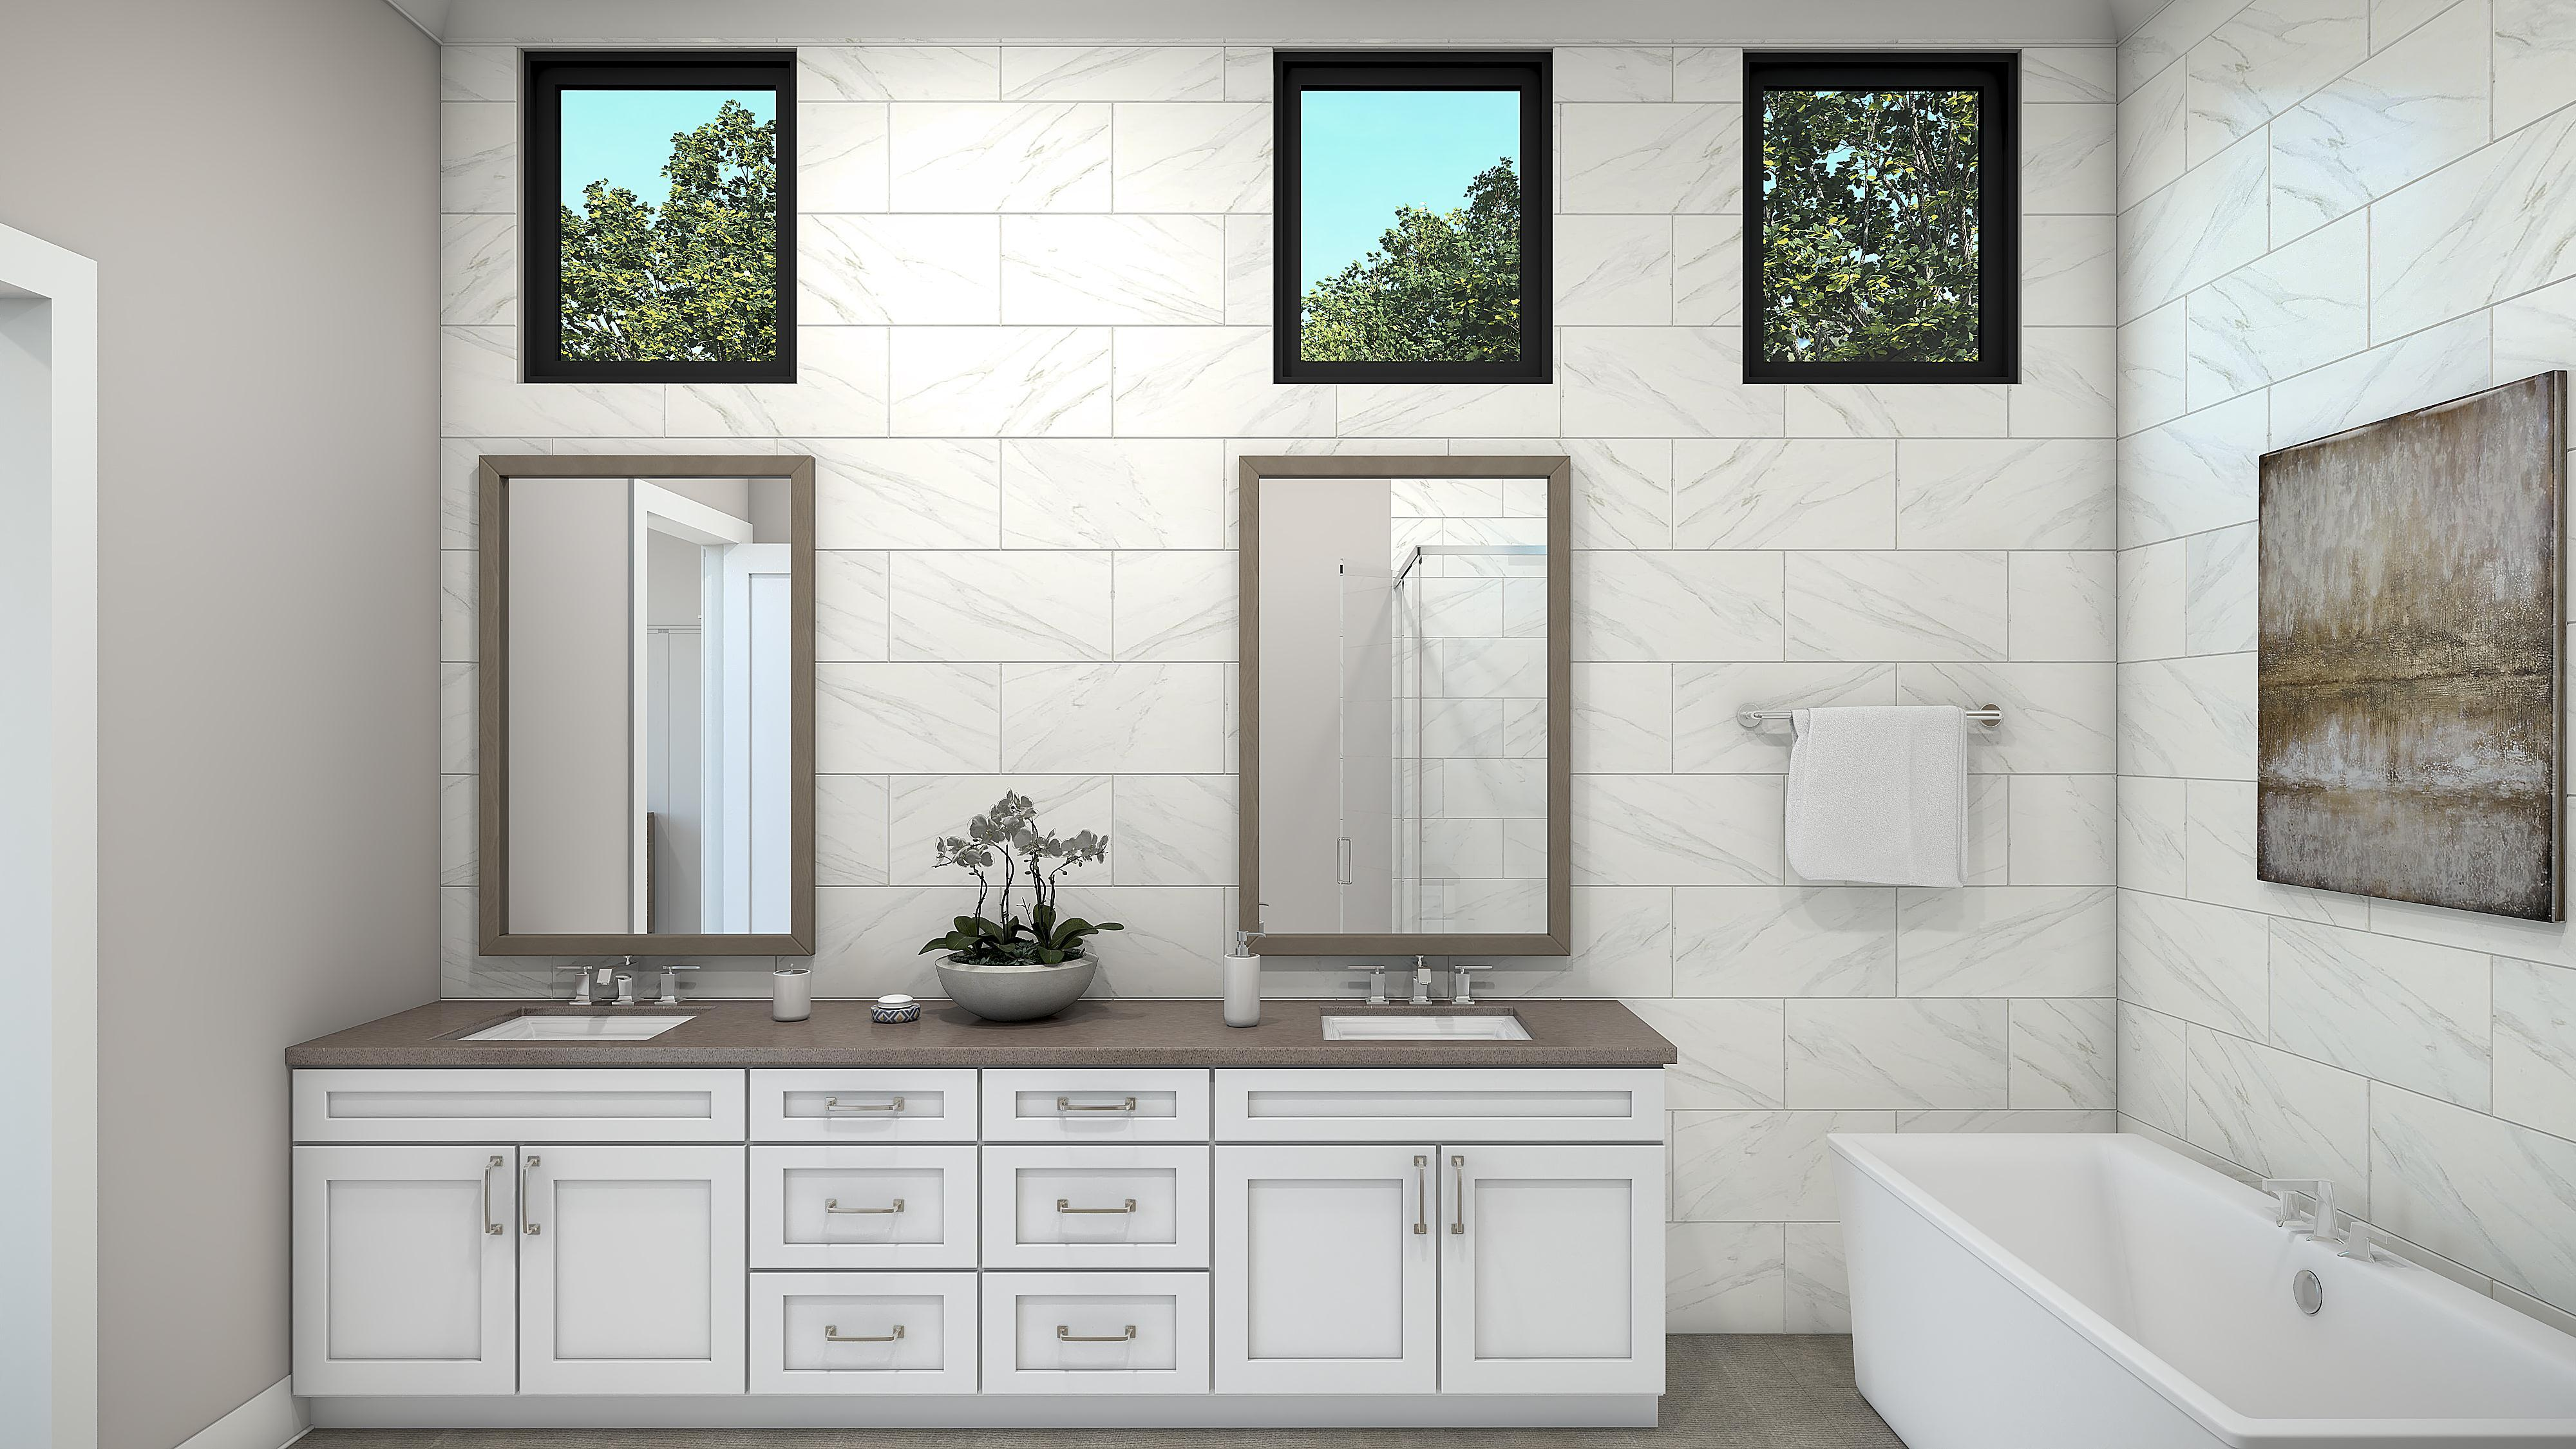 Bathroom featured in the Plan 3-A By Copper Valley  in Stockton-Lodi, CA